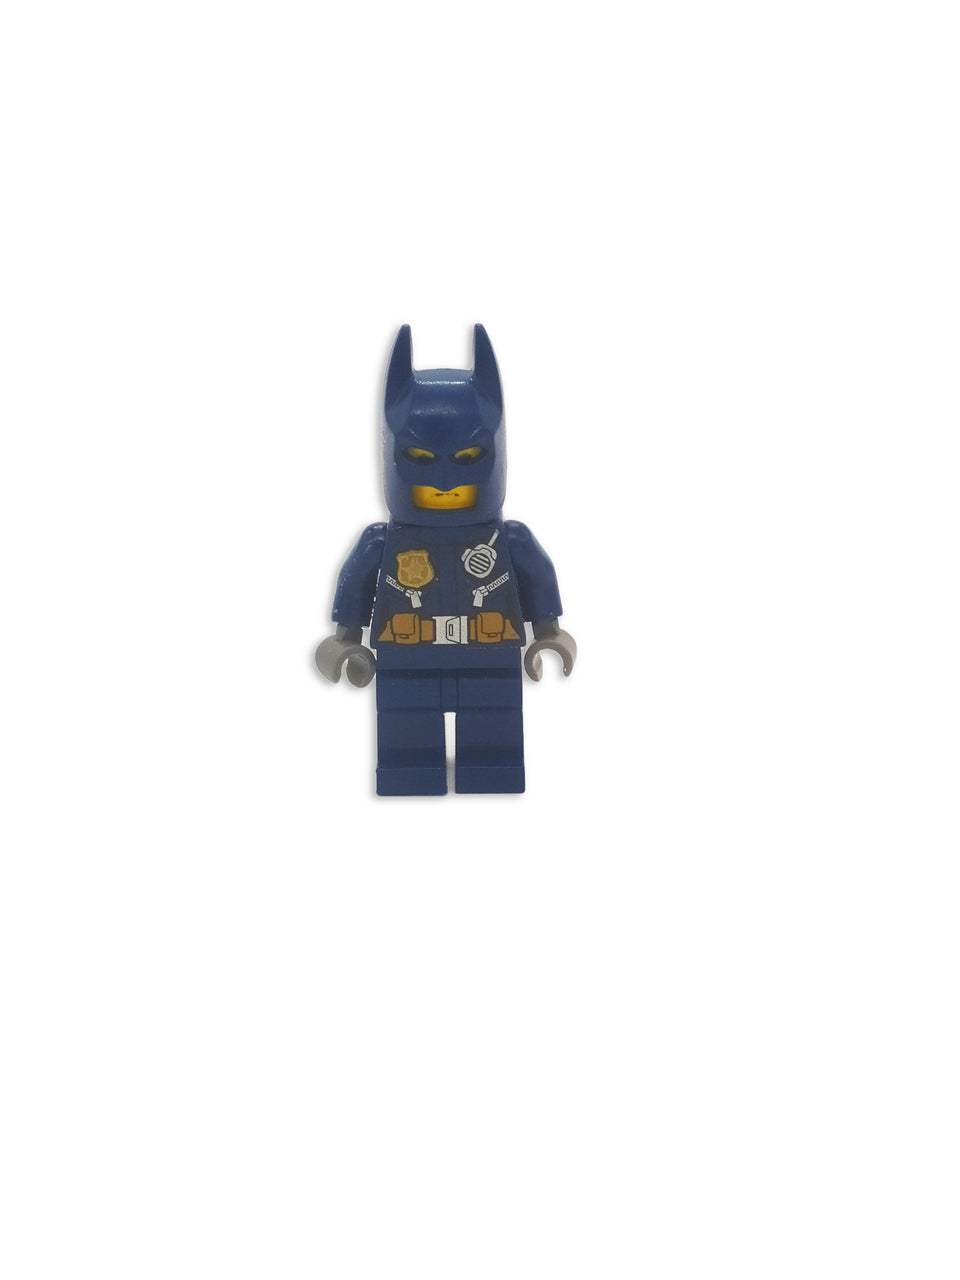 Lego Policeman with a Batman Mask